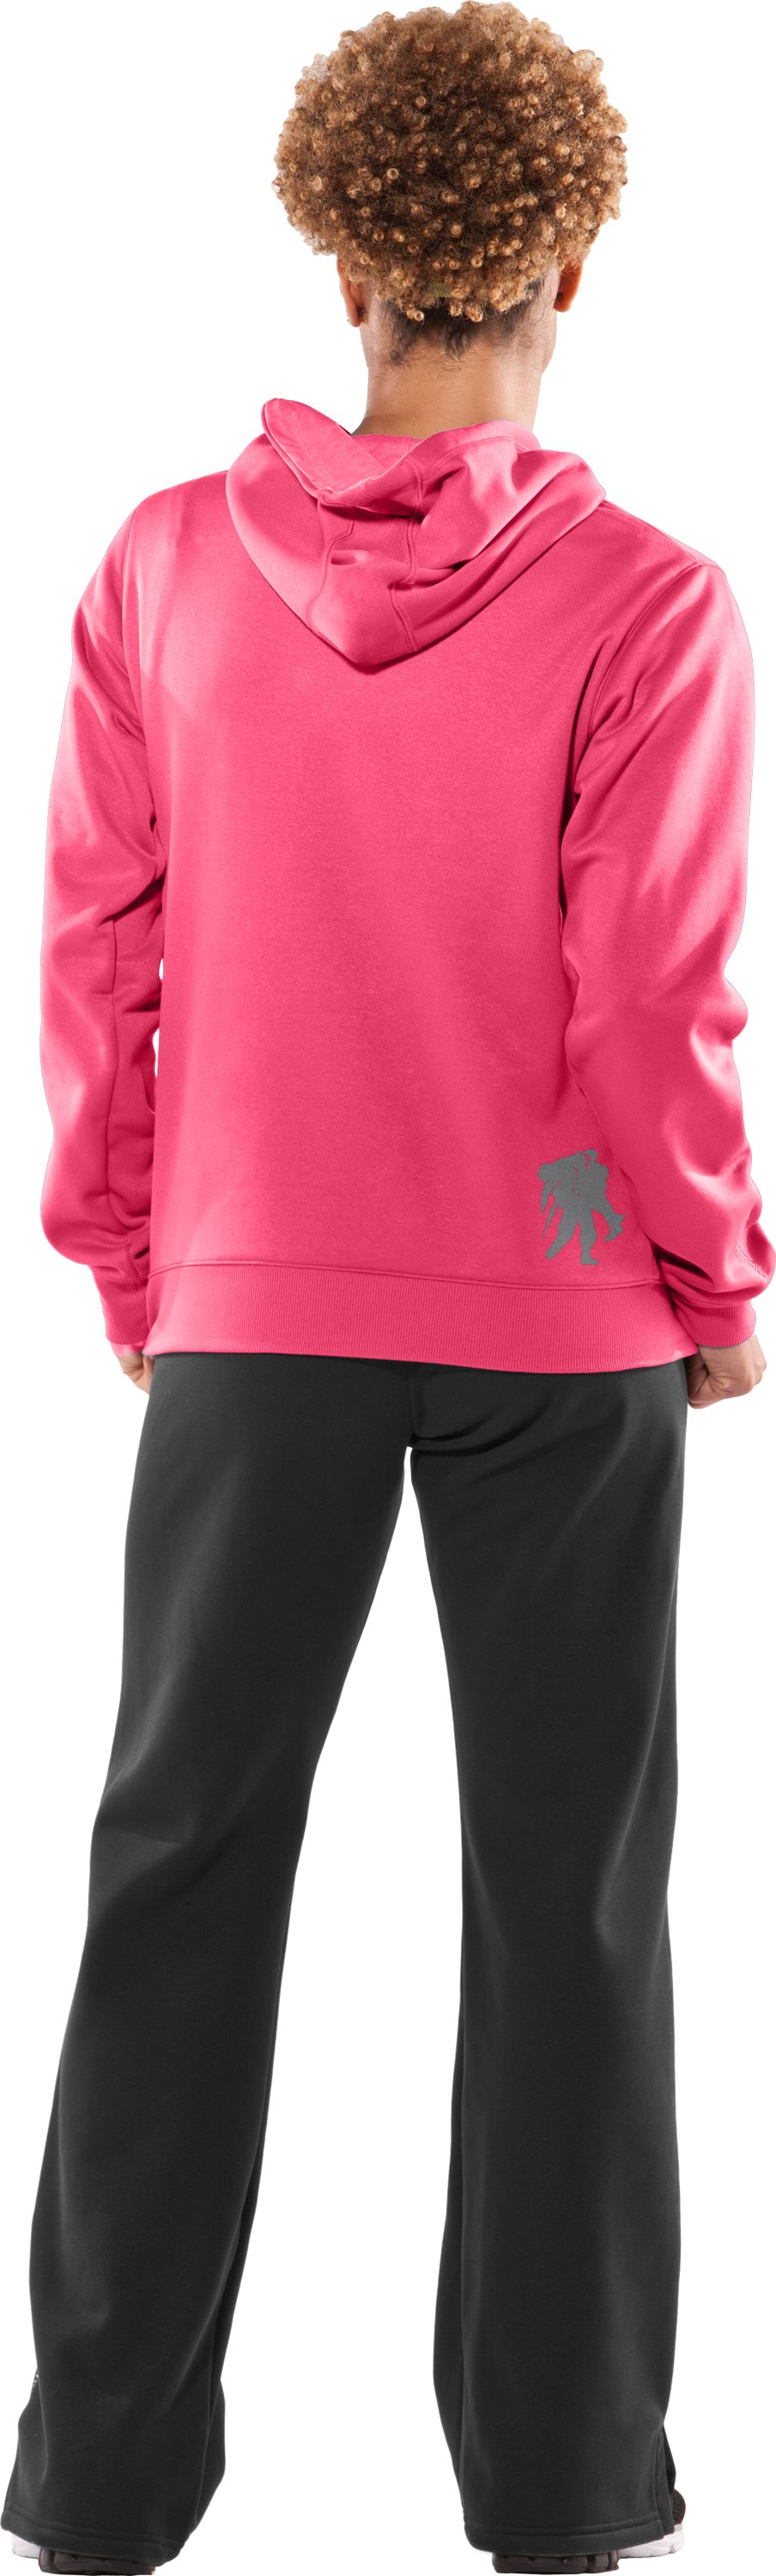 Women's WWP Hoodie, Perfection, Back